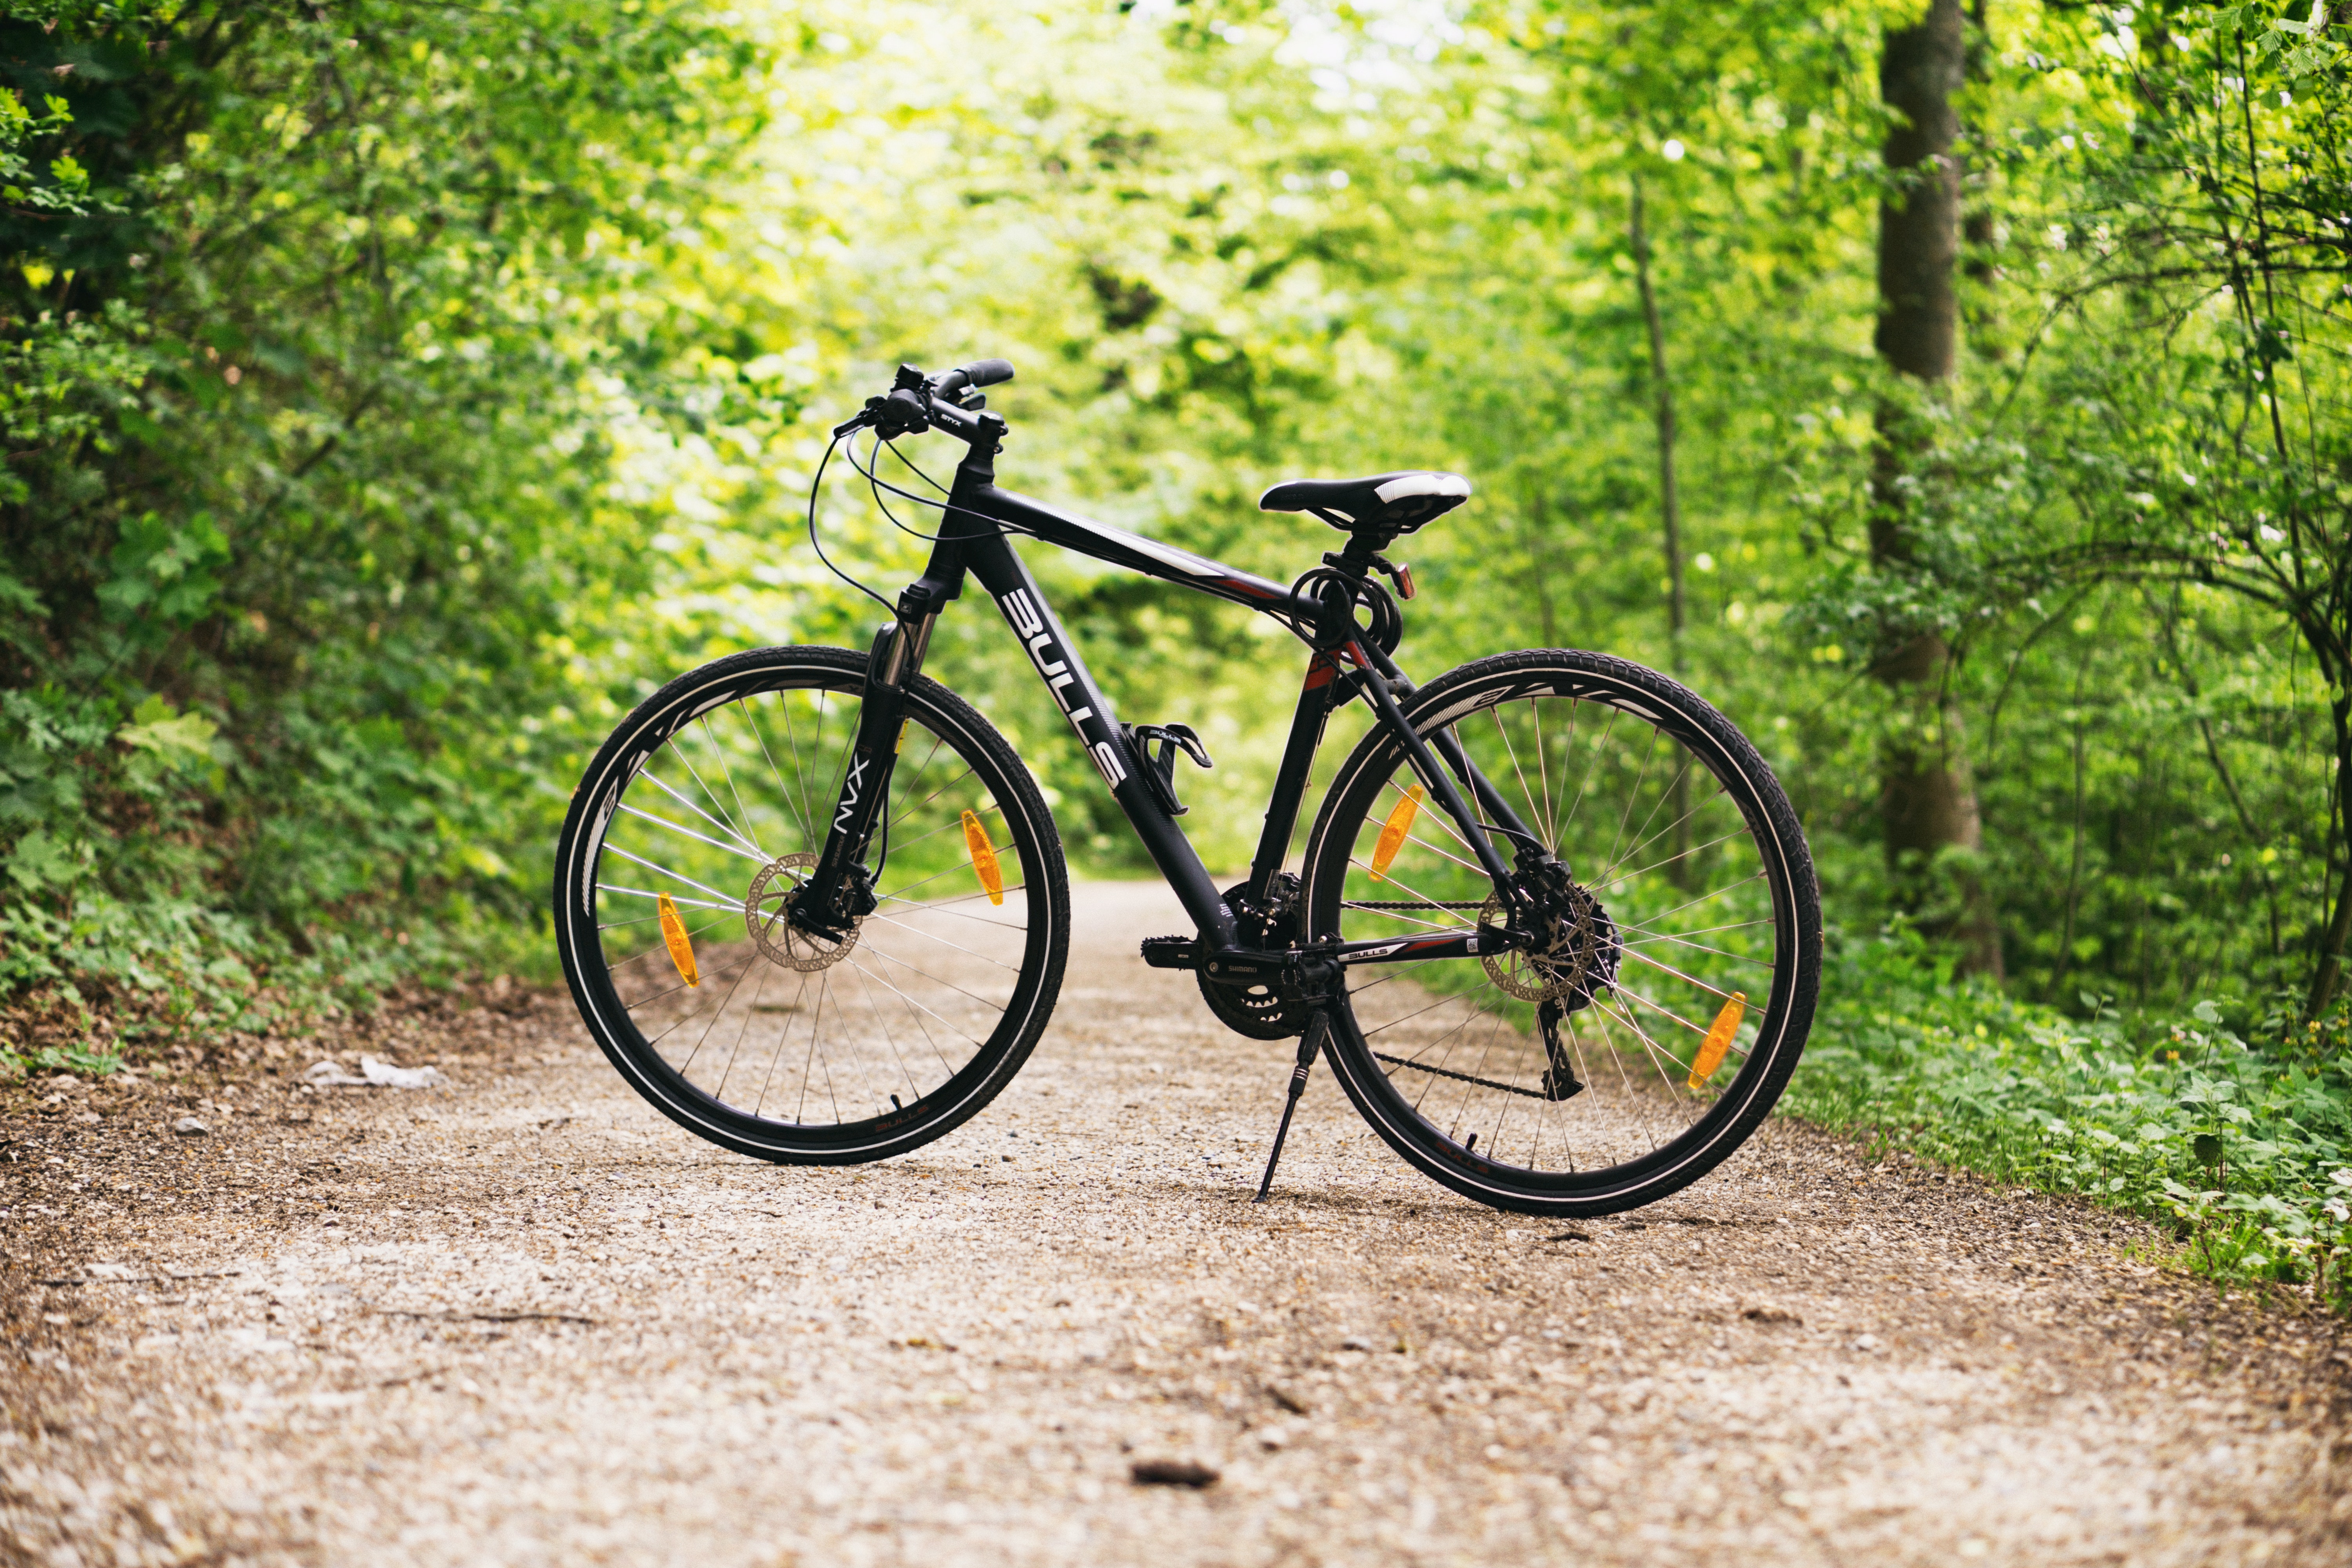 How much should I spend on my first mountain bike?